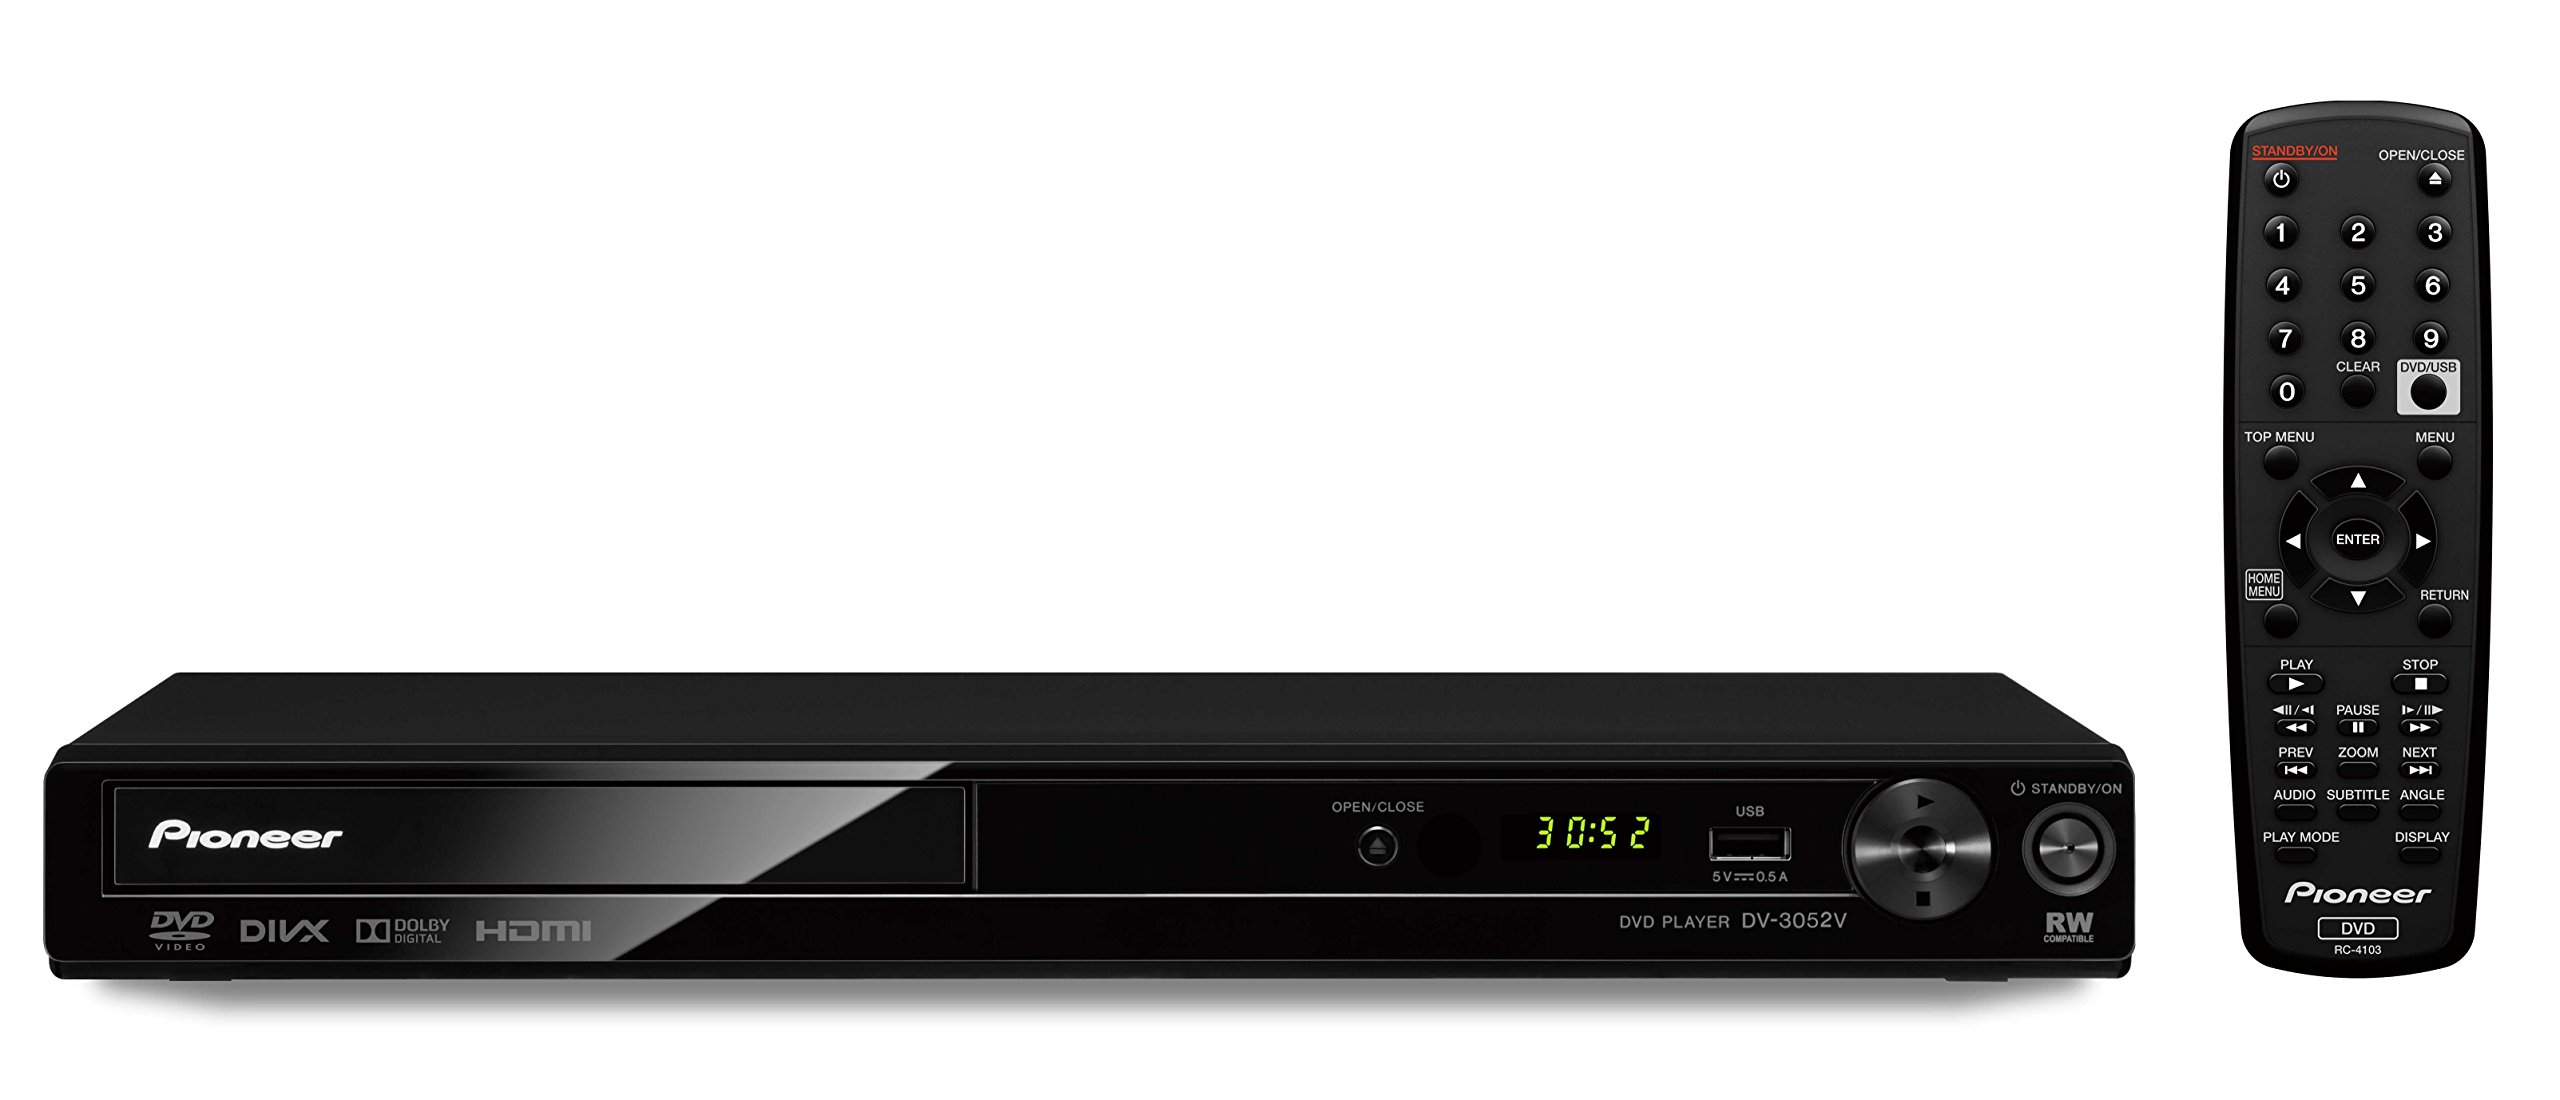 Pioneer DV-3052 Multi System All Region HDMI 1080p Upscaling DVD Player with USB Playback by Pioneer